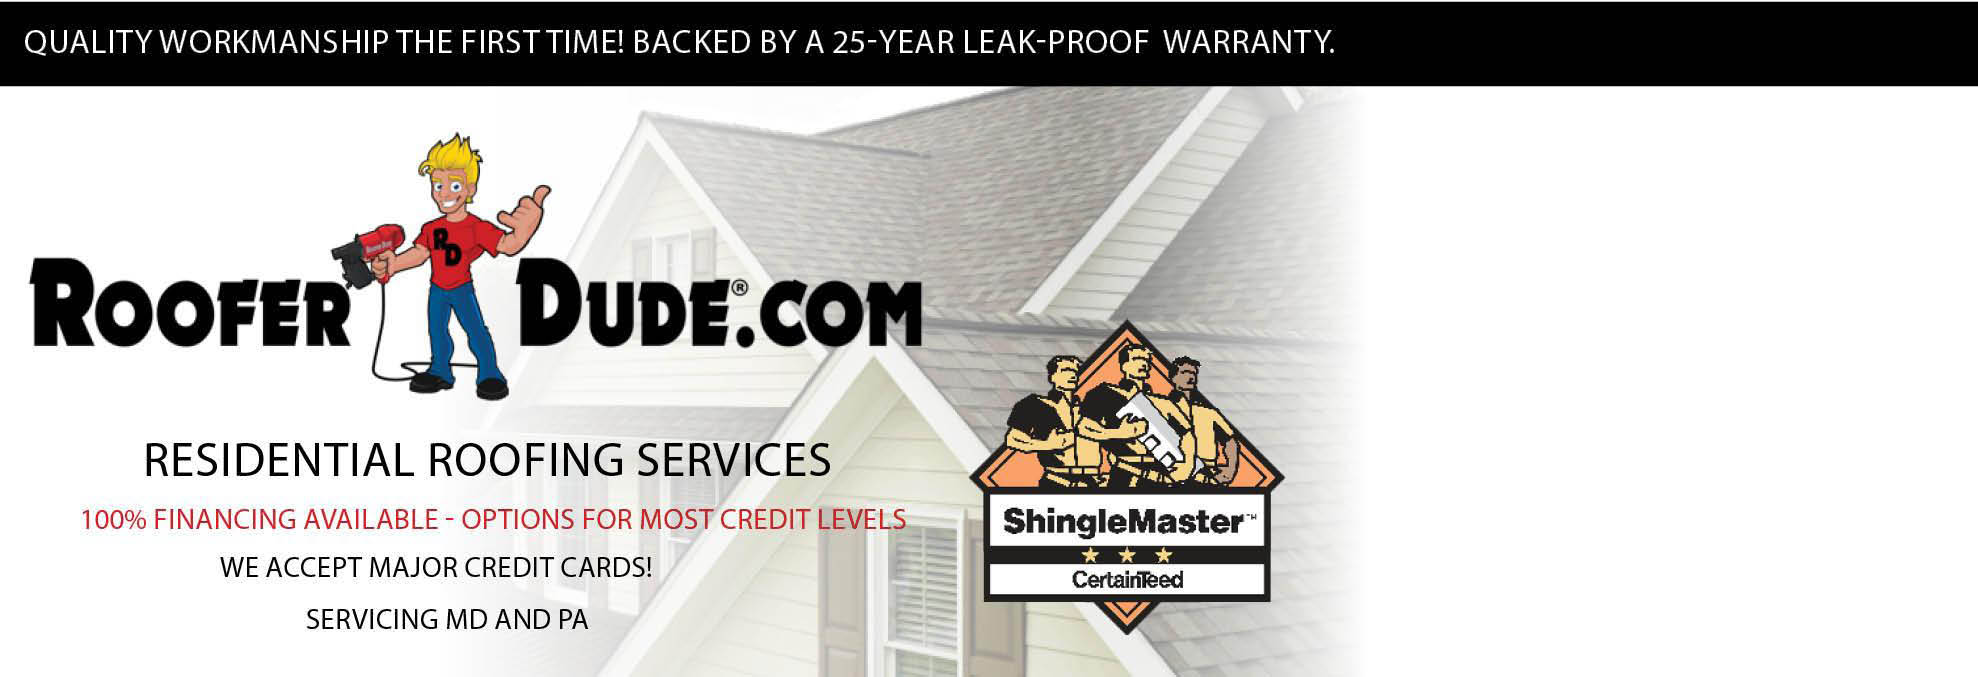 Roofing, Roofer, Shingle Master, Residential, Warranty, Solar Attic Fans